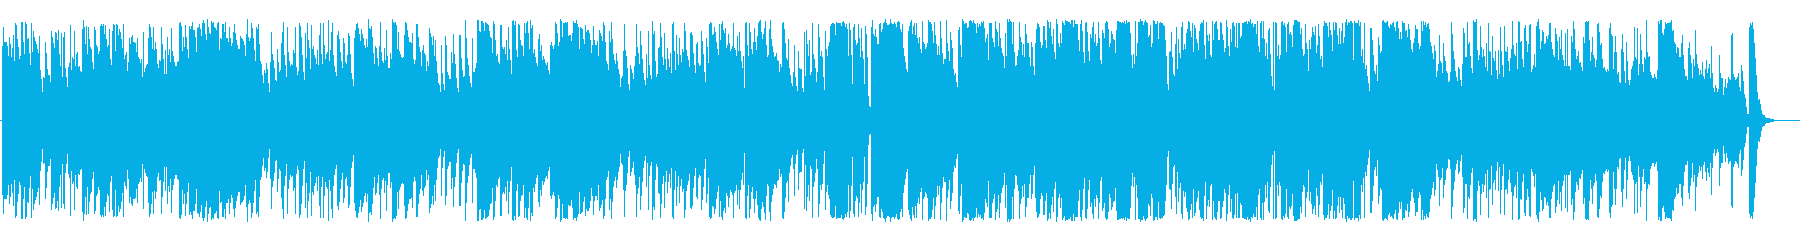 Twinkle star (sax)'s reproduced waveform